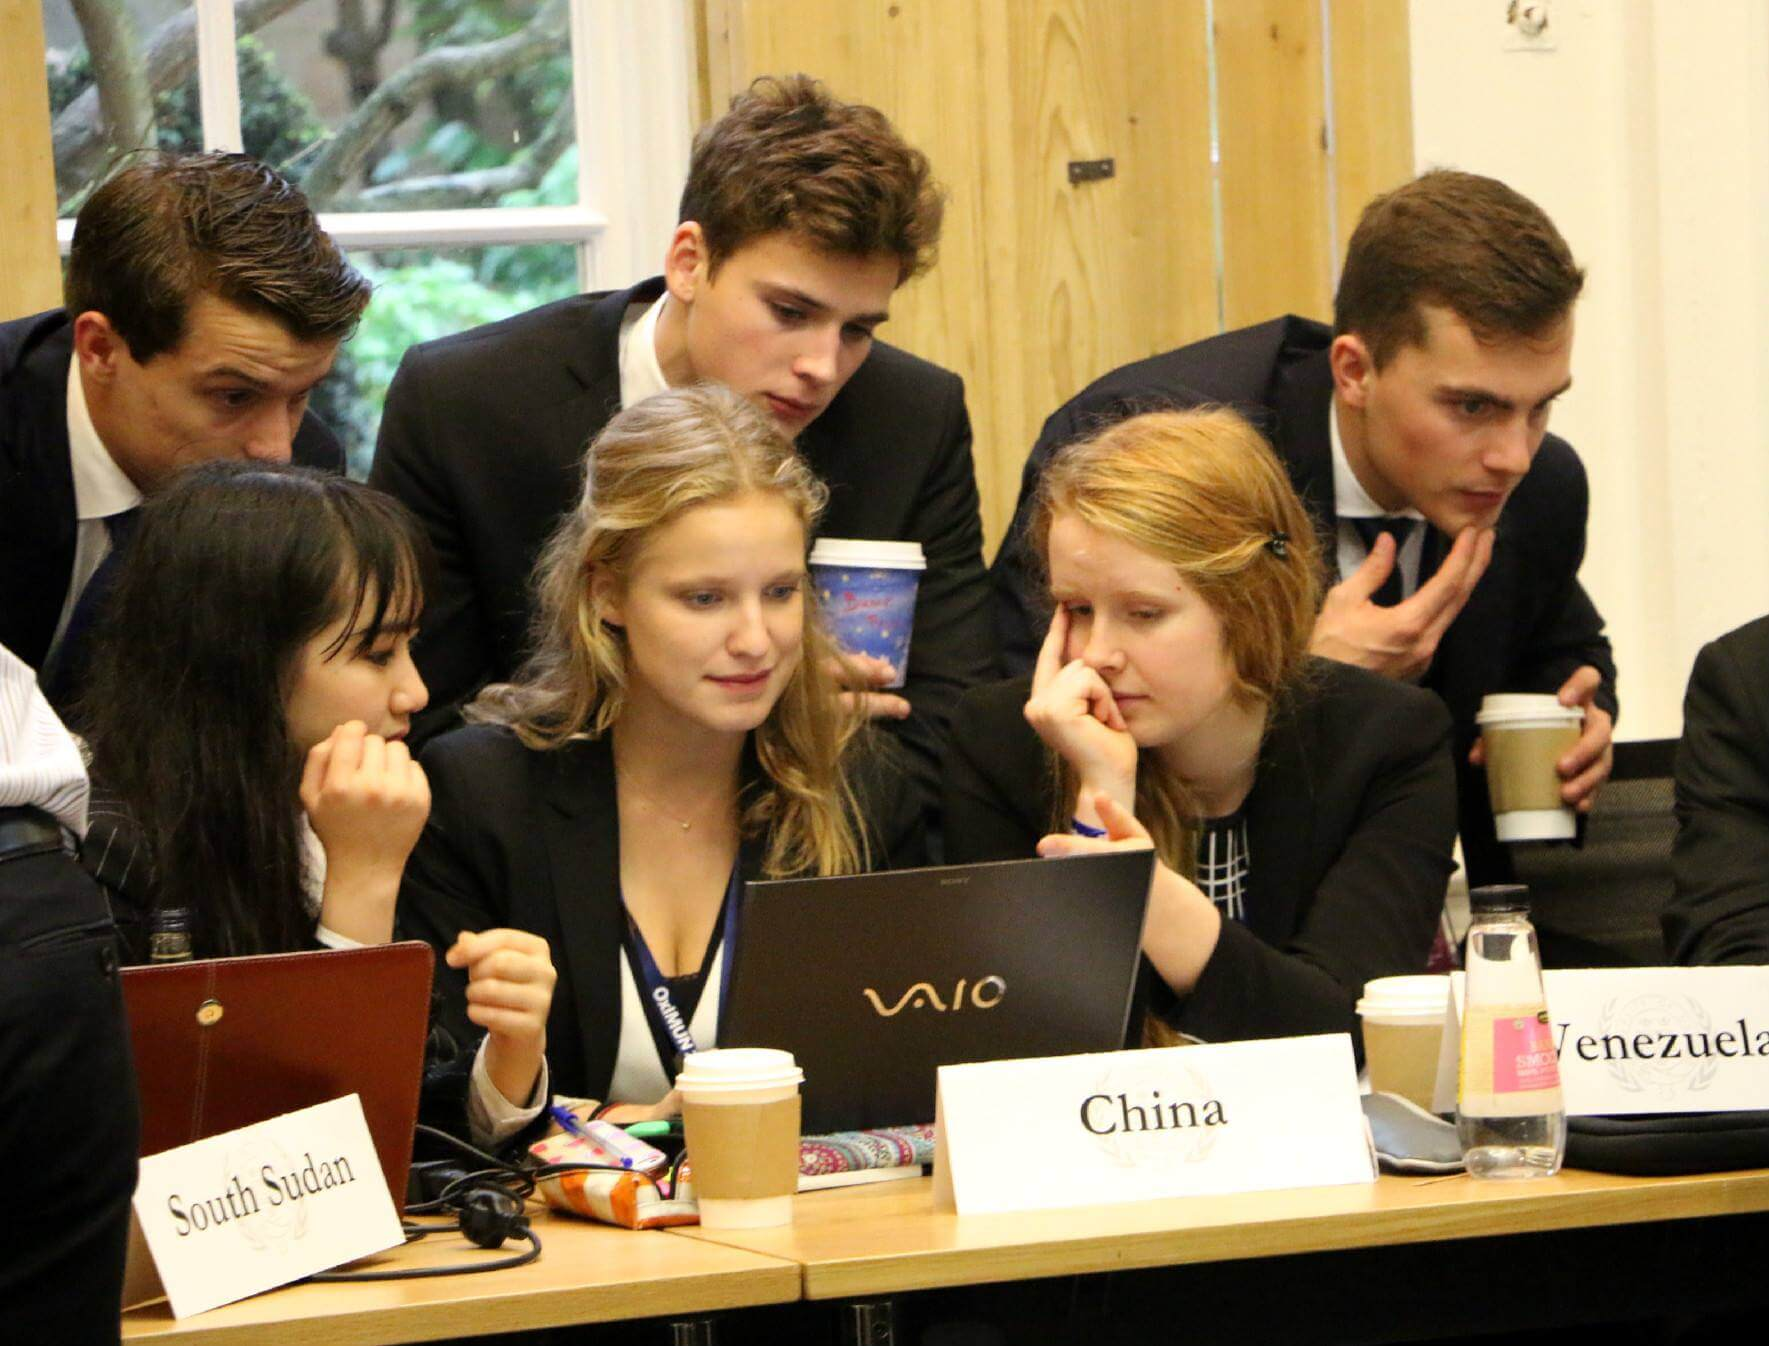 Oxford University – Model United Nations Conference